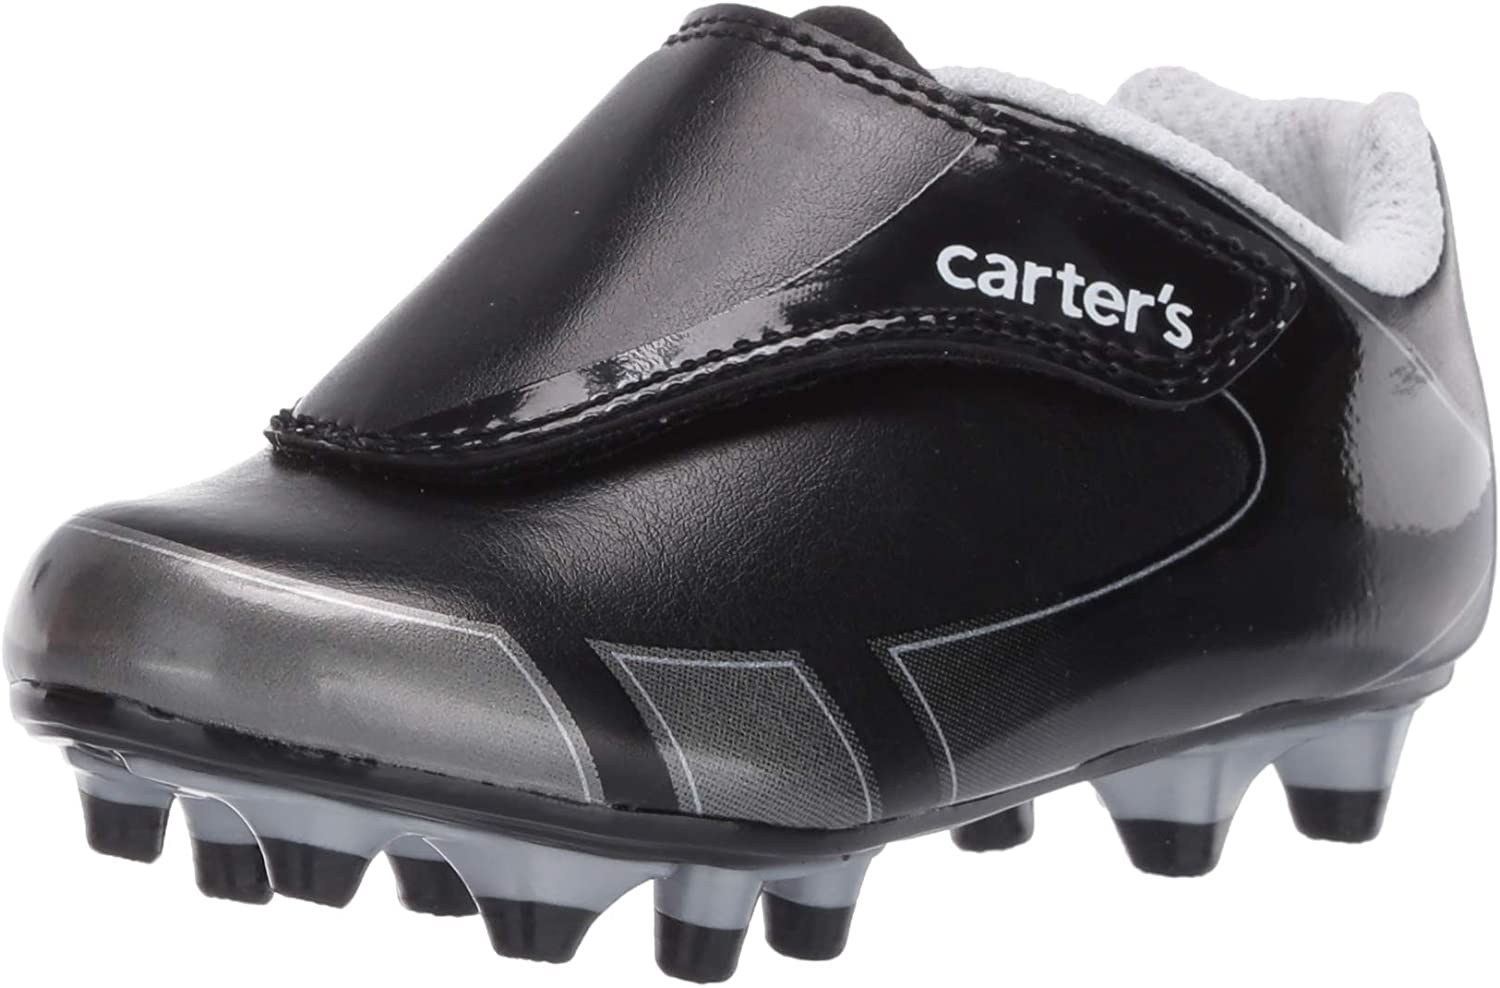 Carter's Unisex-Child Fica Ranking TOP17 Hook and Cleat Sports Loop High quality new Sneaker